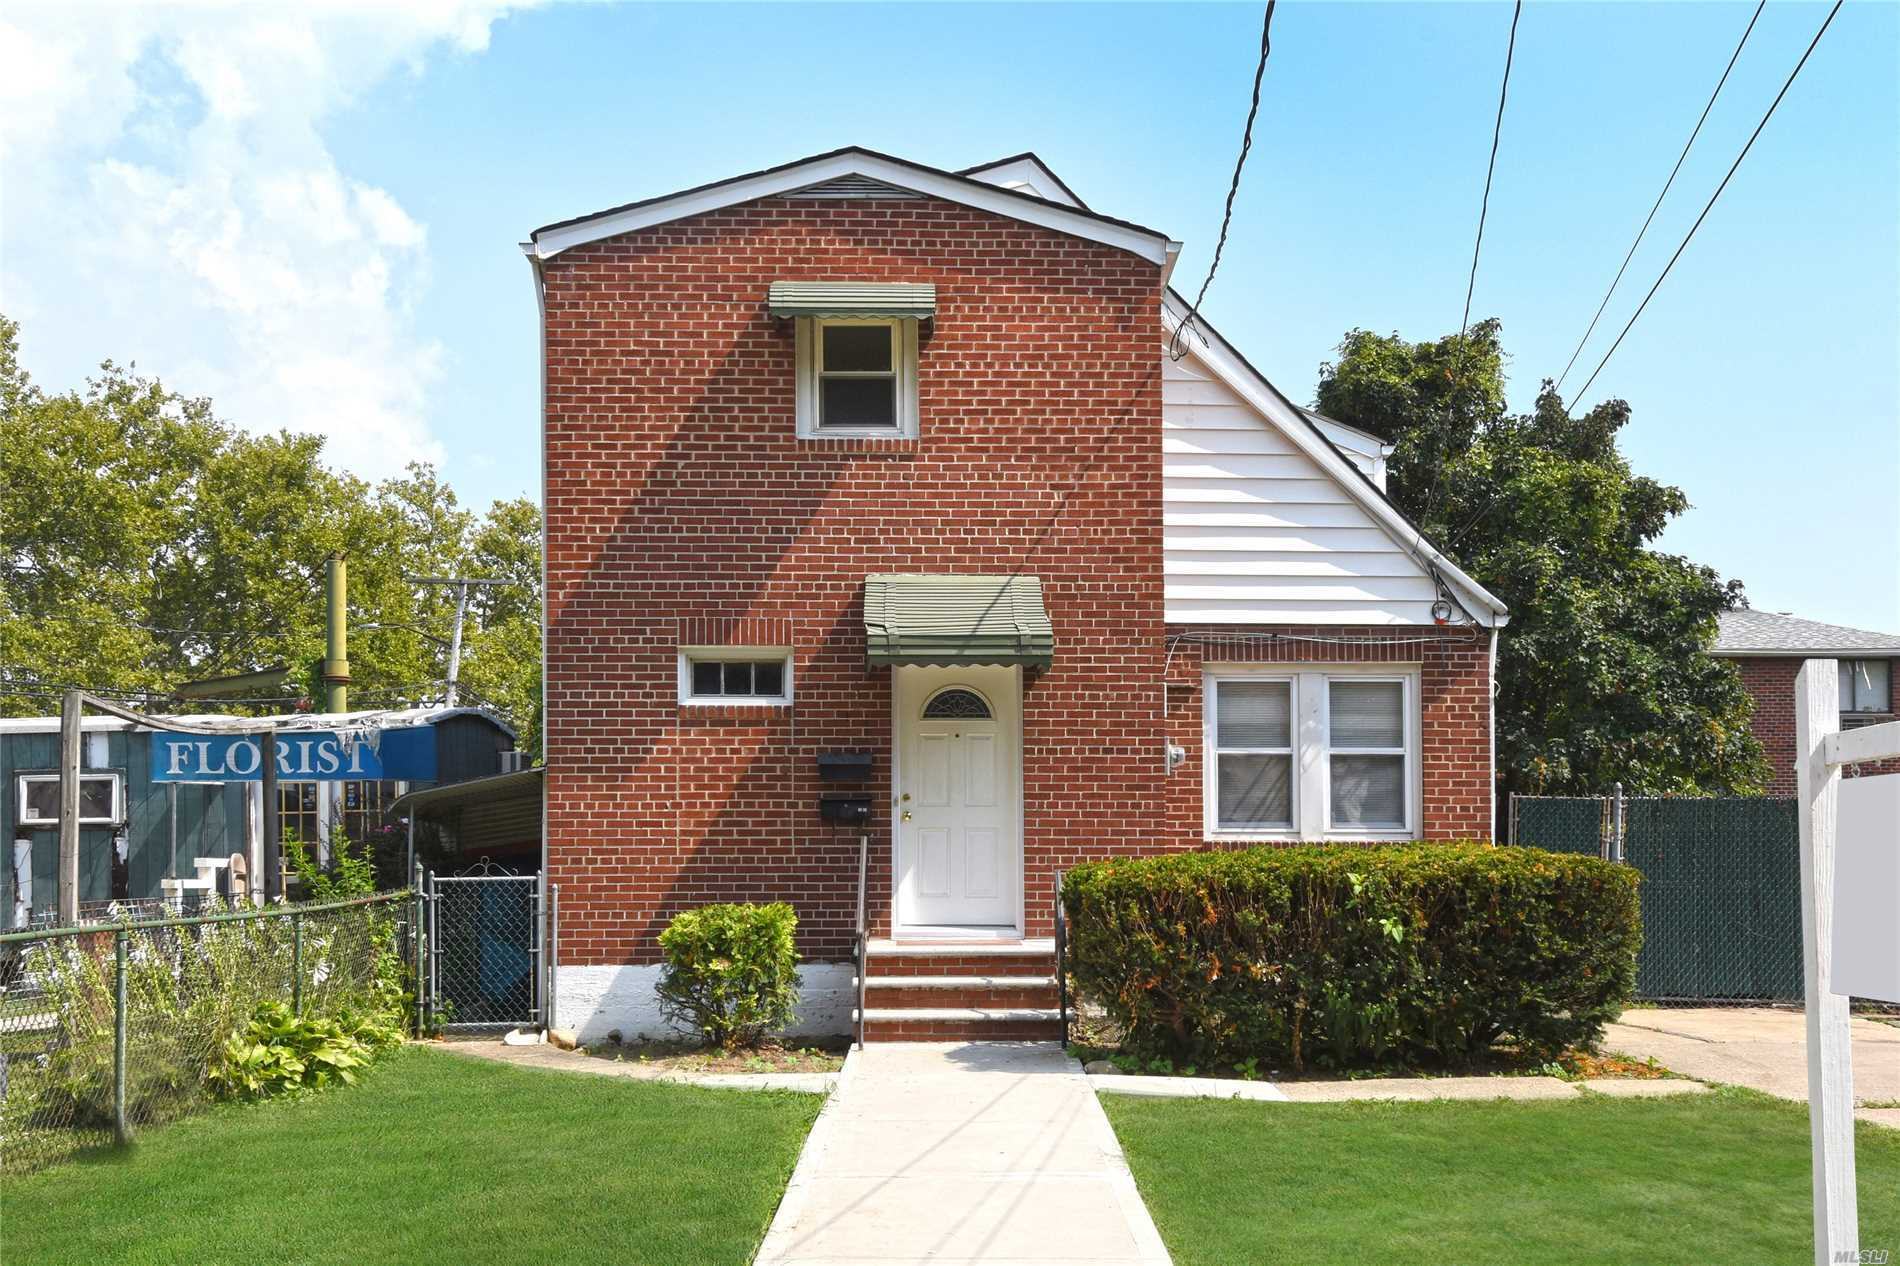 Just Arrived- 2-Family Home On Over Sized R3-2 Zoning Corner Property In Fresh Meadows. Oversized Property Allows For Property Subdivision And 2 Family House Can Be Built- Current Business Rental On Land. Convenient To Shopping, Transportation. Easy Access To Lie. Survey Available Upon Request.